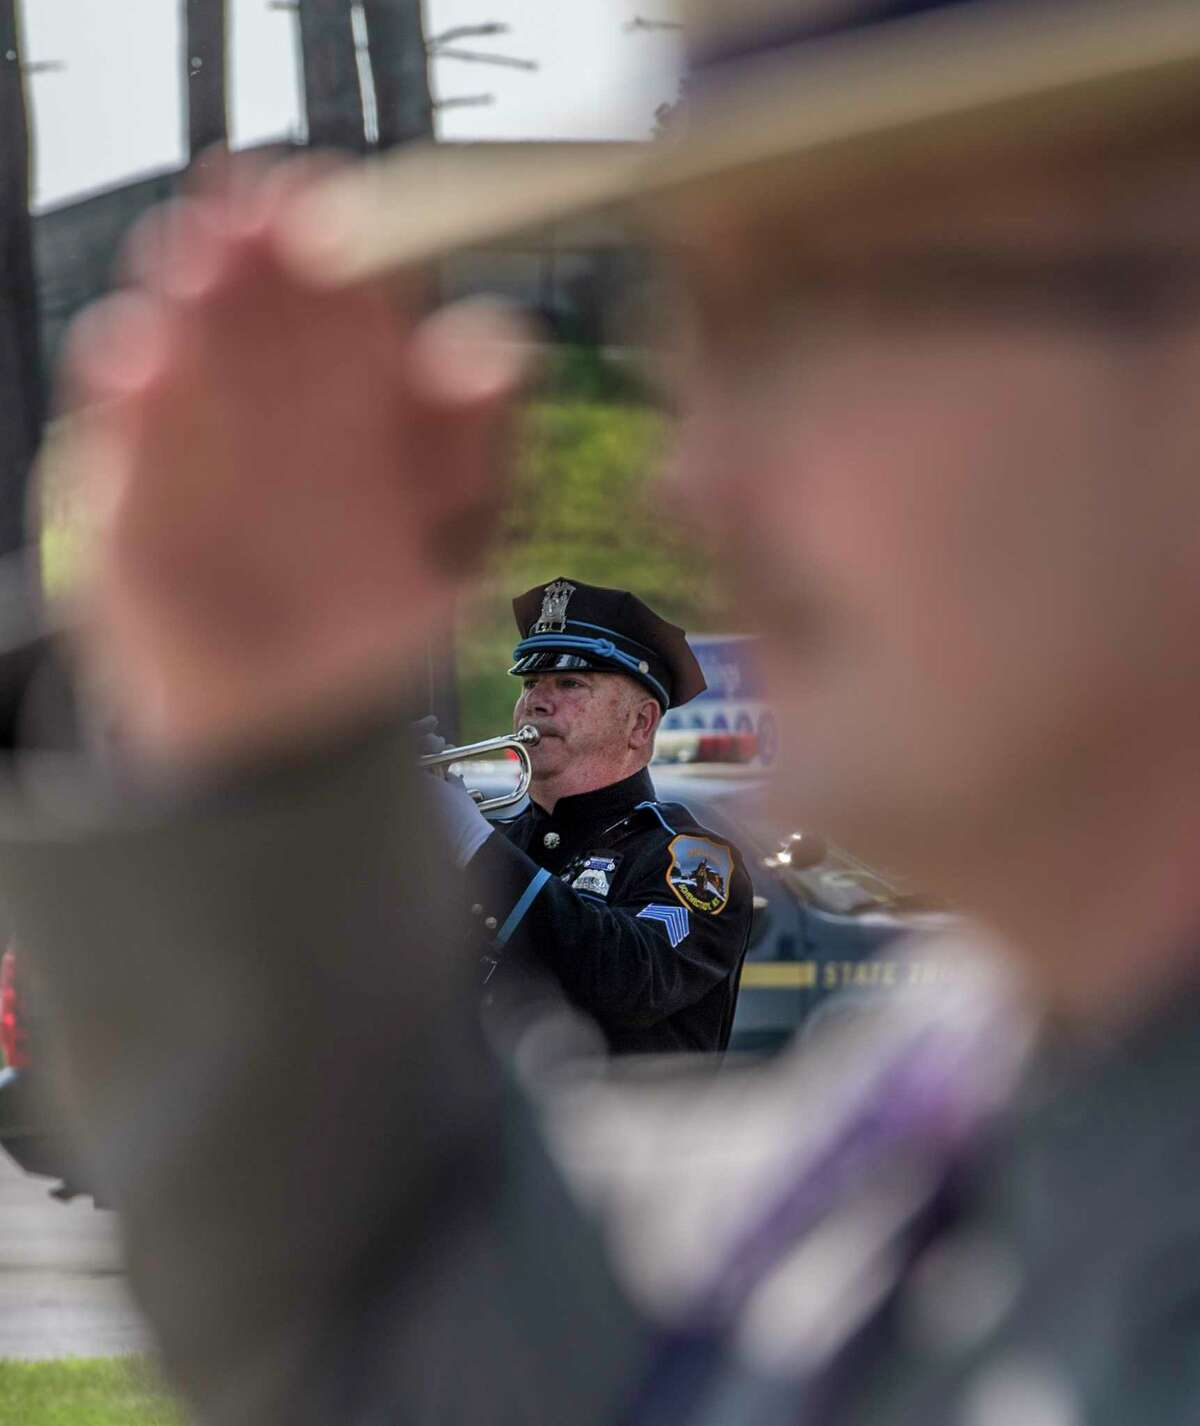 Sean Solomon of the Schenectady Police Honor Guard play Taps at the Annual Memorial and Awards Ceremony held at the training academy Wednesday May 30, 2018 in Albany, N.Y. (Skip Dickstein/Times Union)